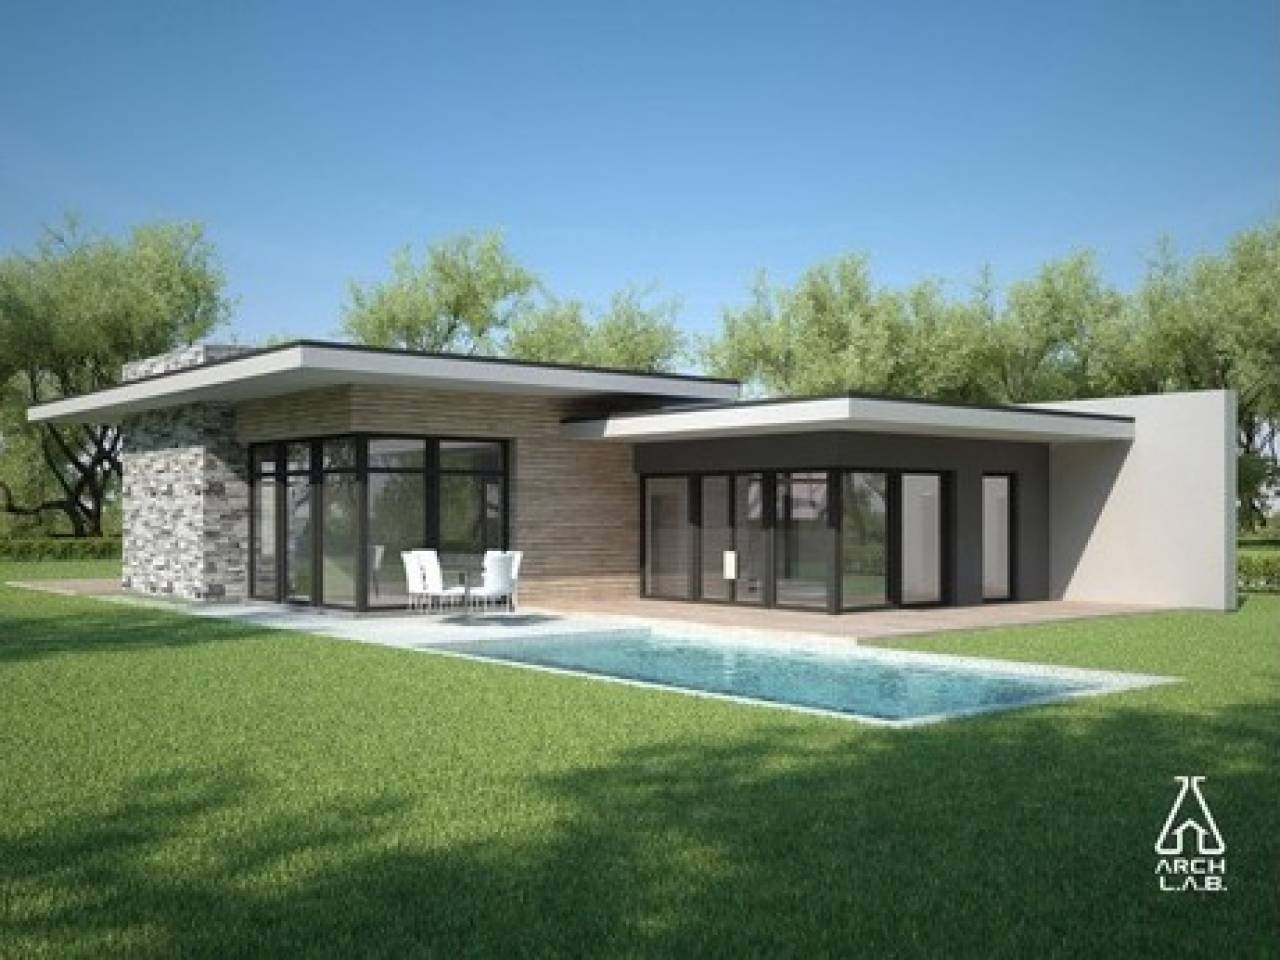 House Plans One Story ontemporary Single - House Plans #86494 - ^